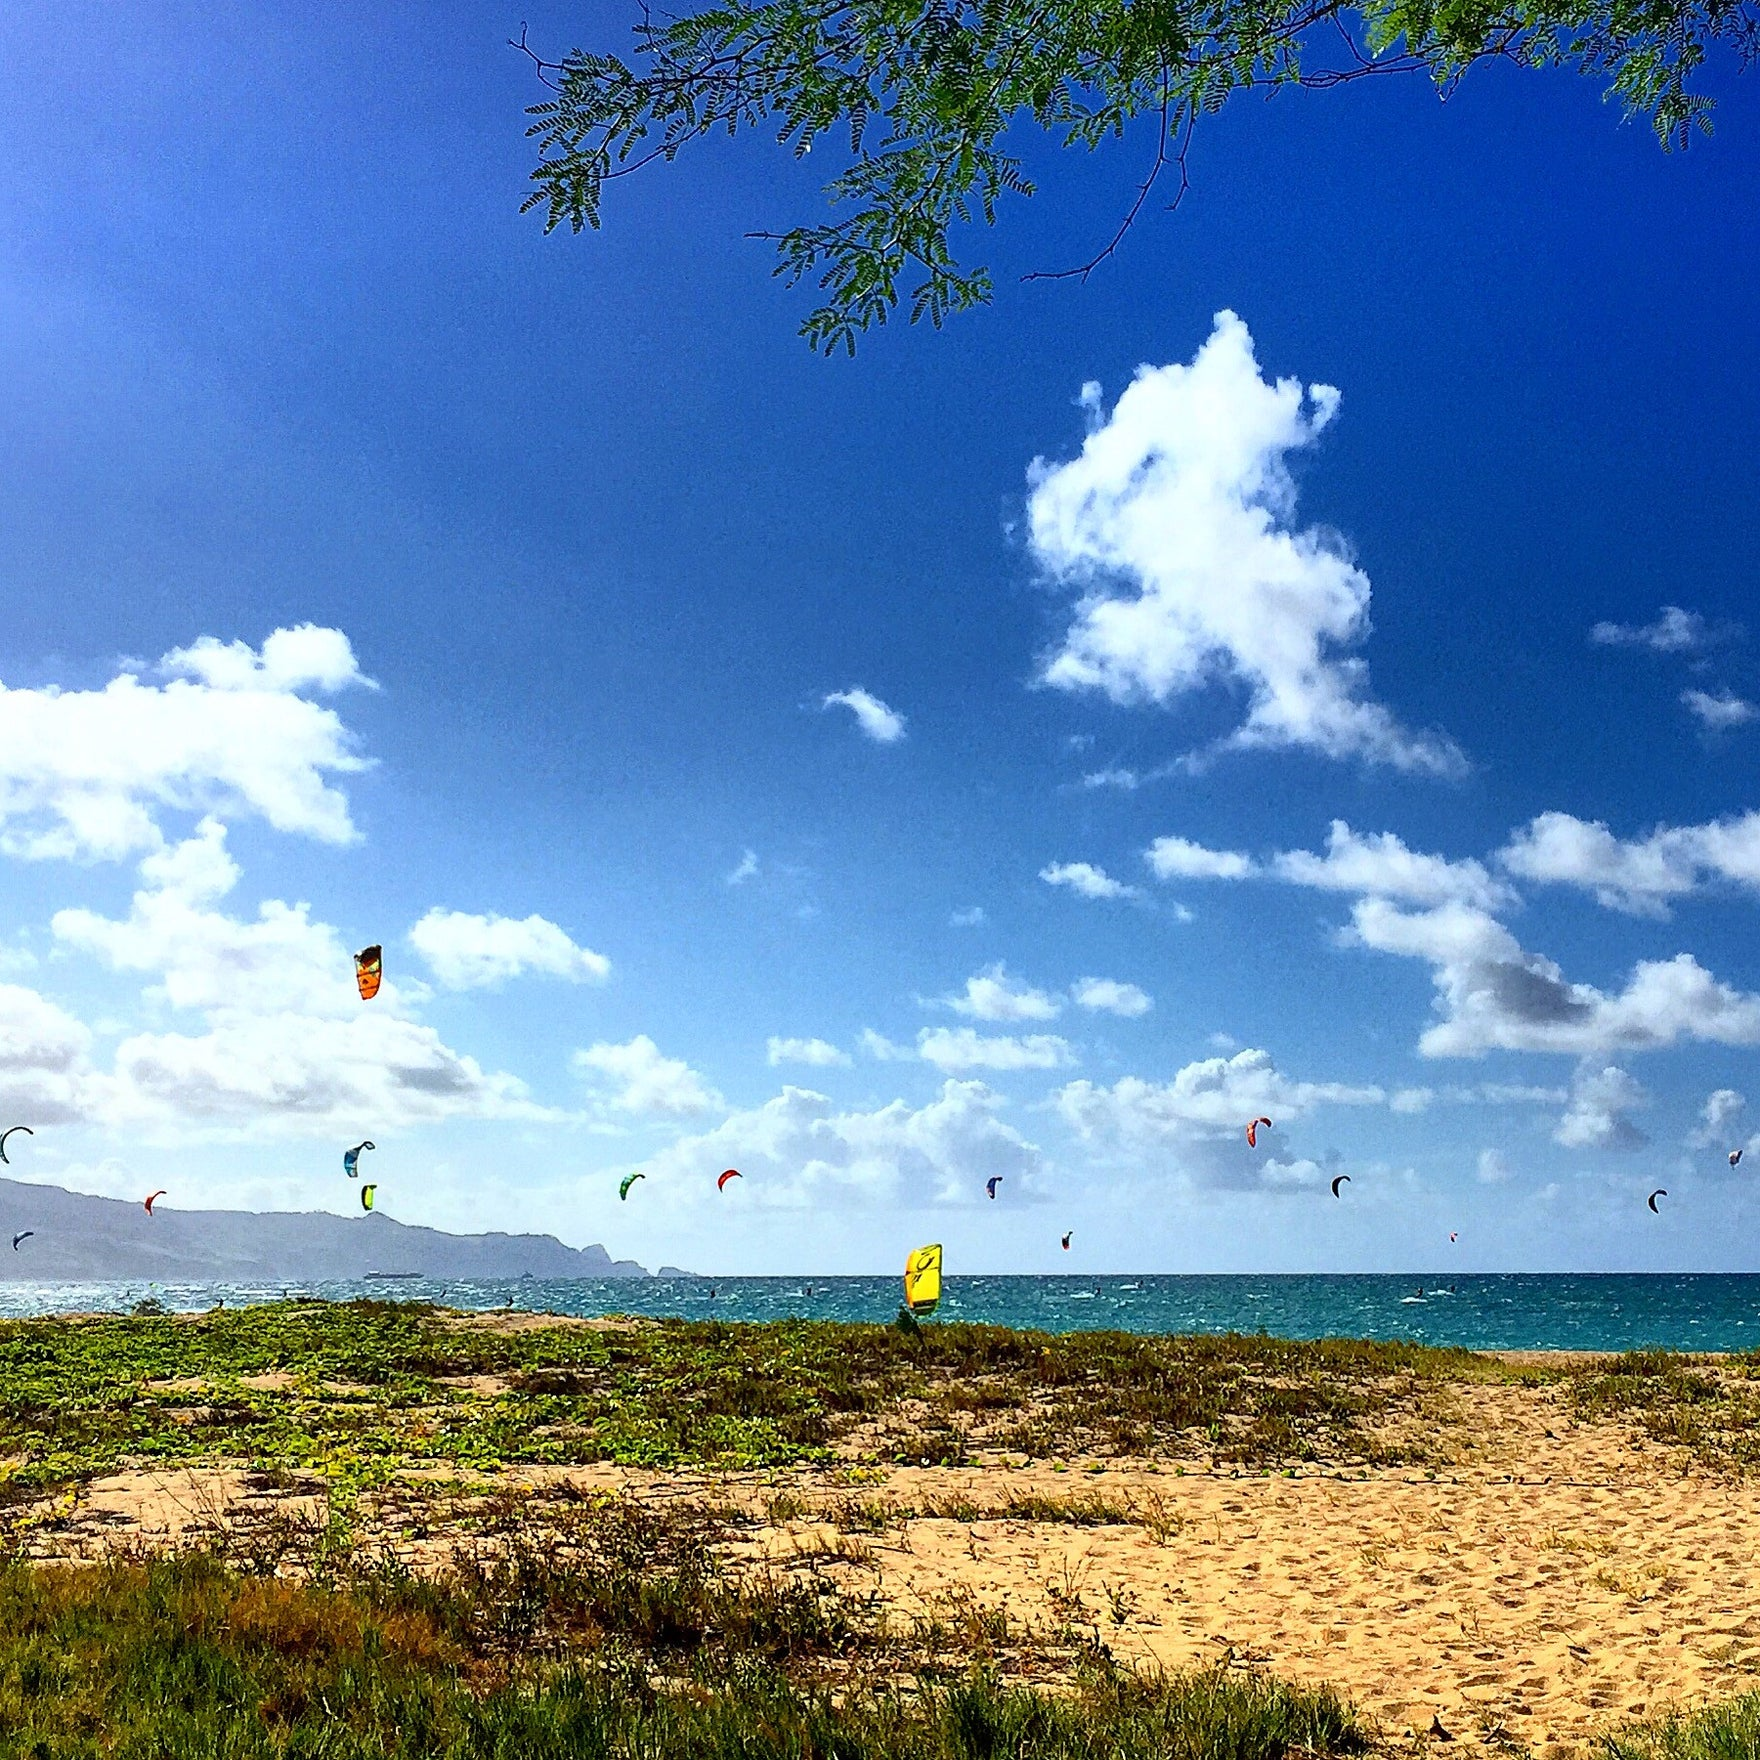 Maui, Hawaii - The Best Kiting Destination In The World